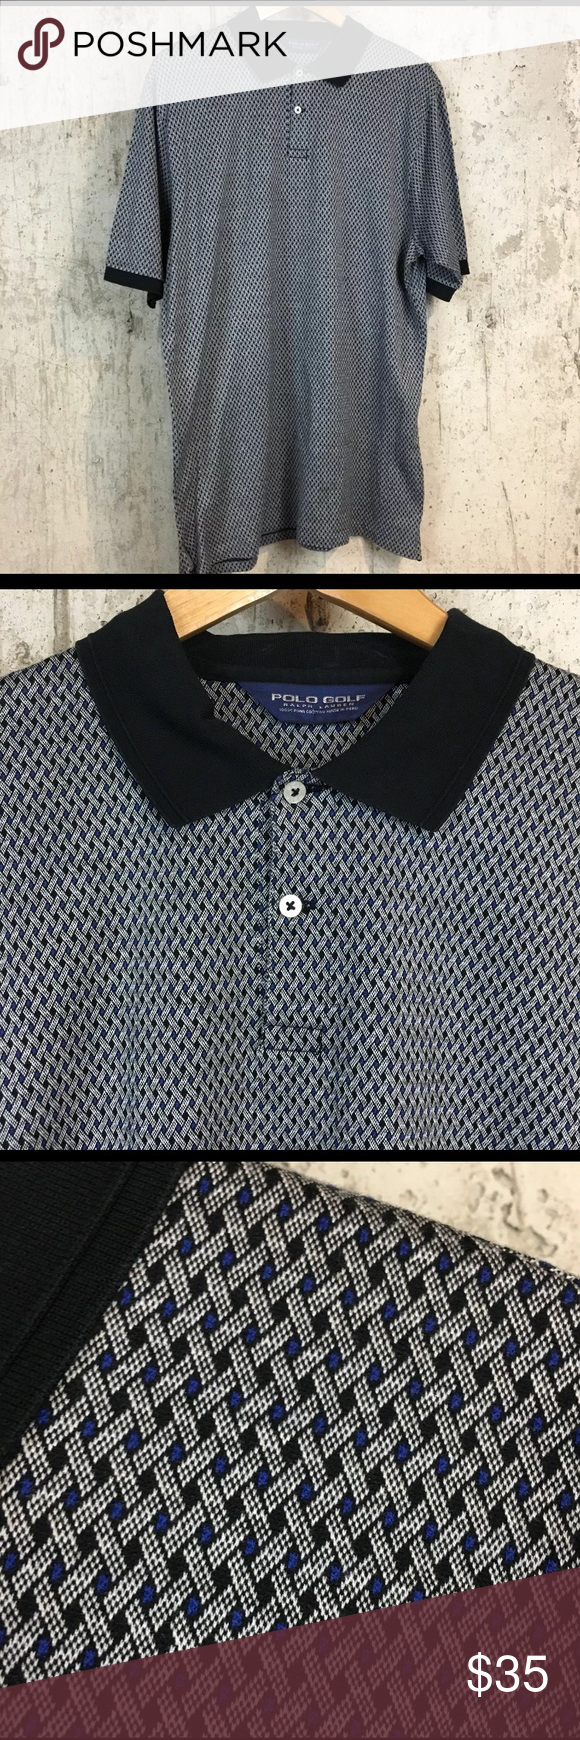 4973042b Polo Ralph Lauren Golf L Diamond Print Polo Shirt Polo Golf Ralph Lauren polo  shirt. Navy blue and silver with a weave pattern. 100% pima cotton.